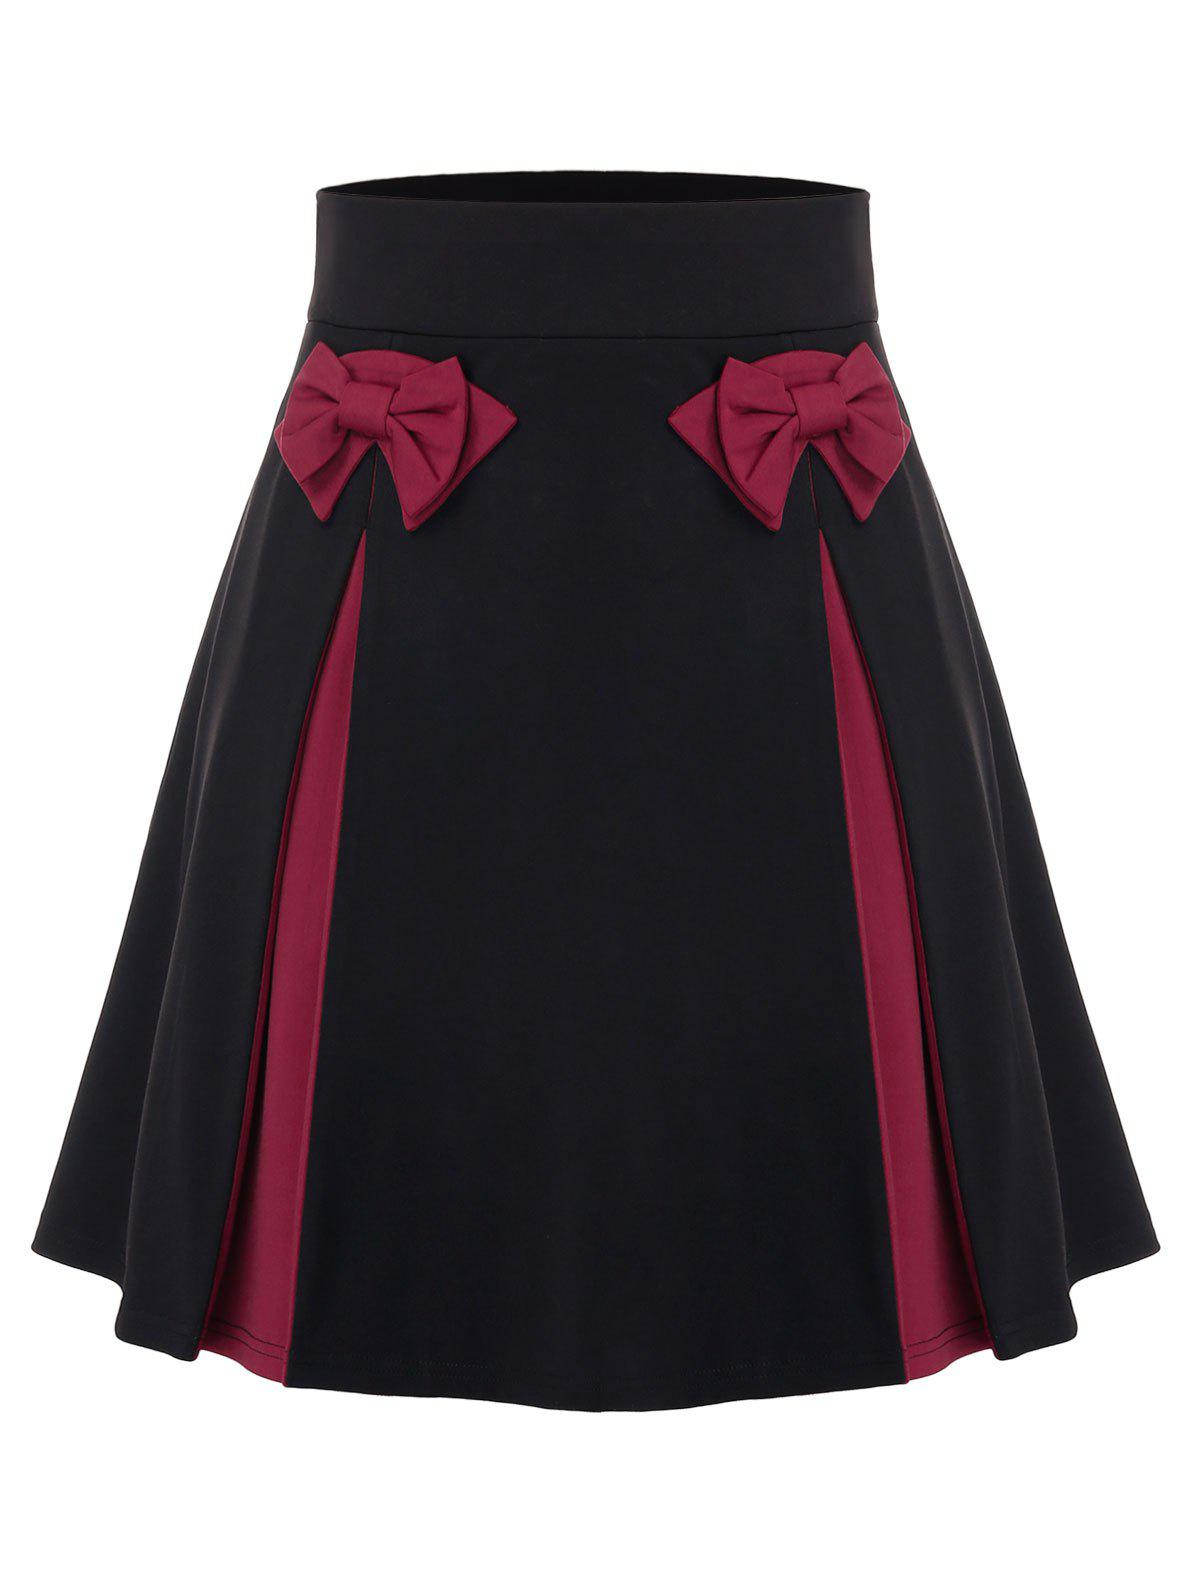 Fashion Plus Size Bowknot Colorblock Mini Skirt